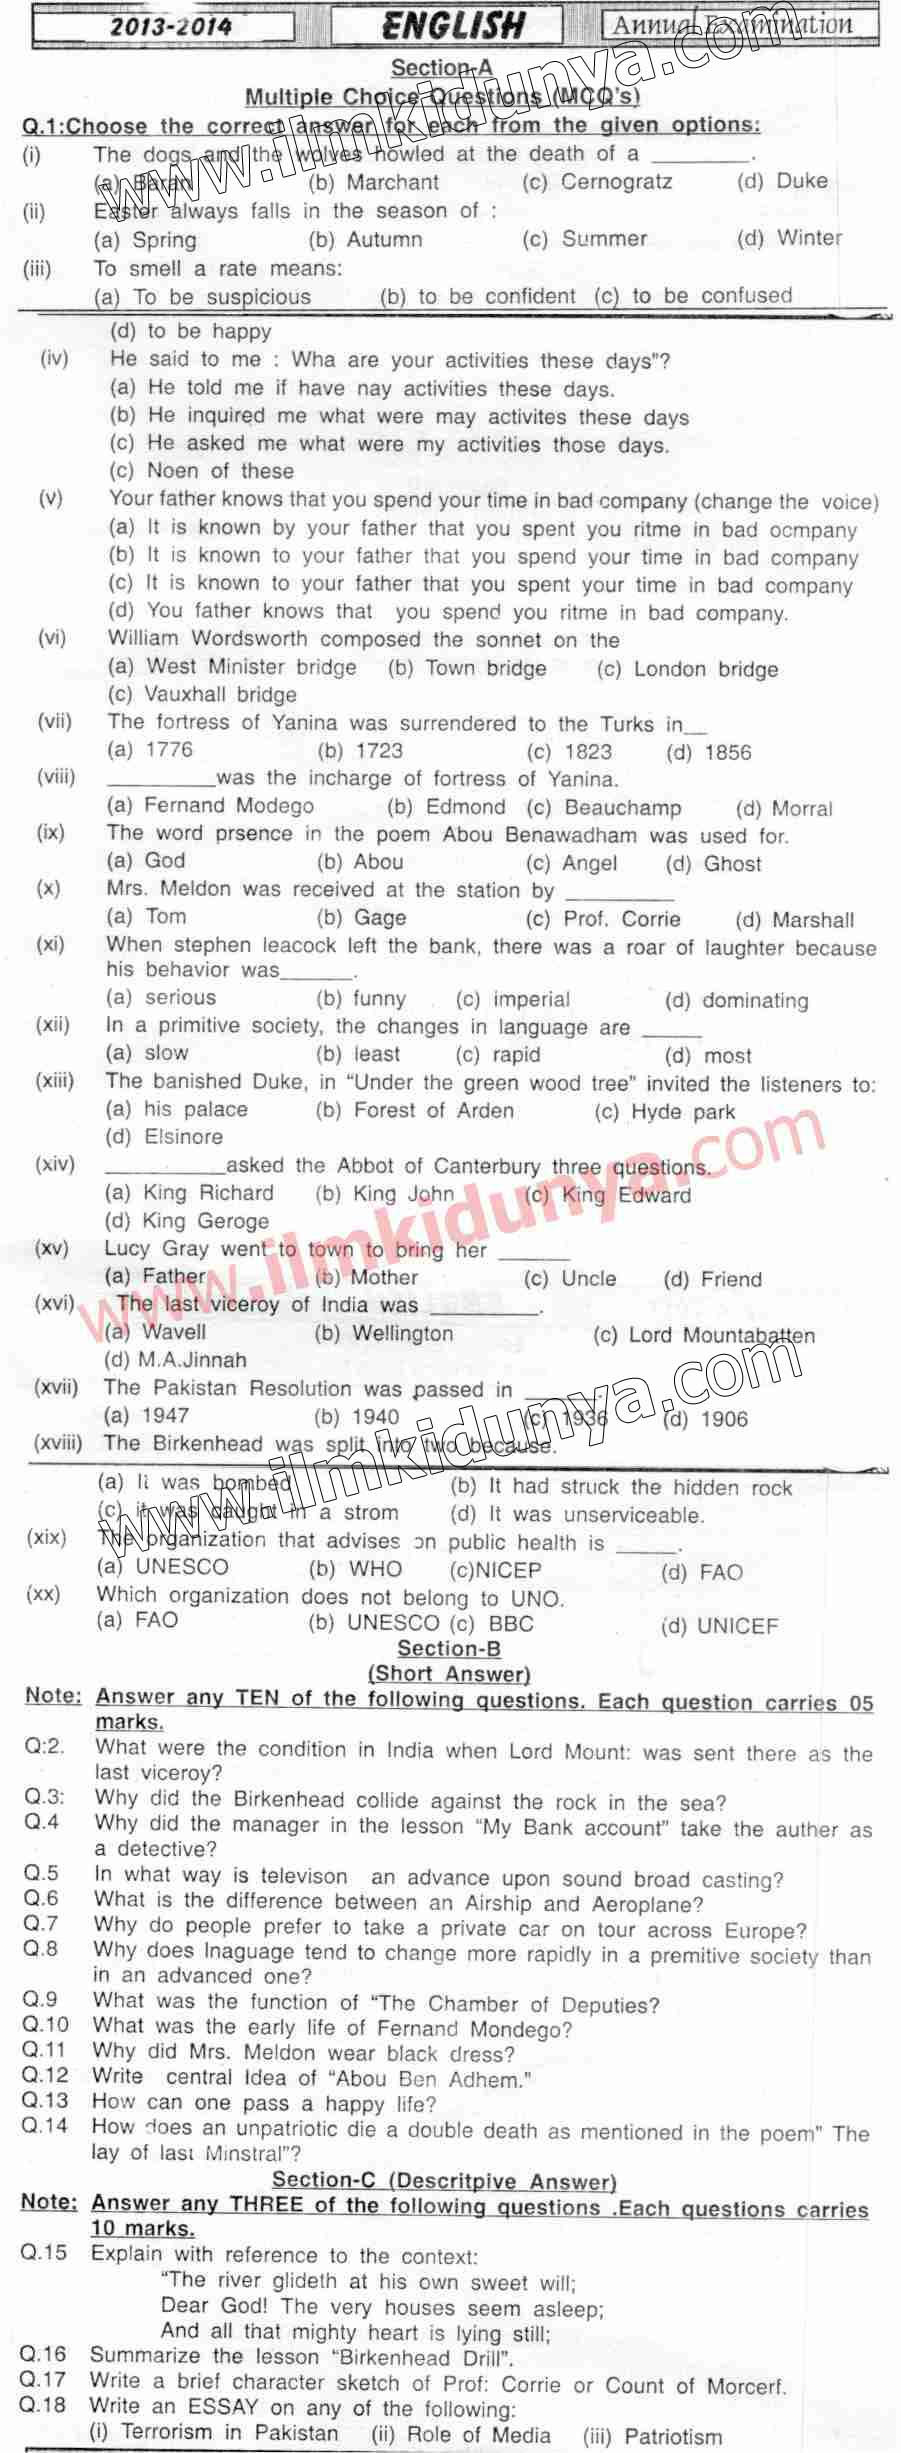 Past Papers 2014 Sukkur Board Inter Part 1 English